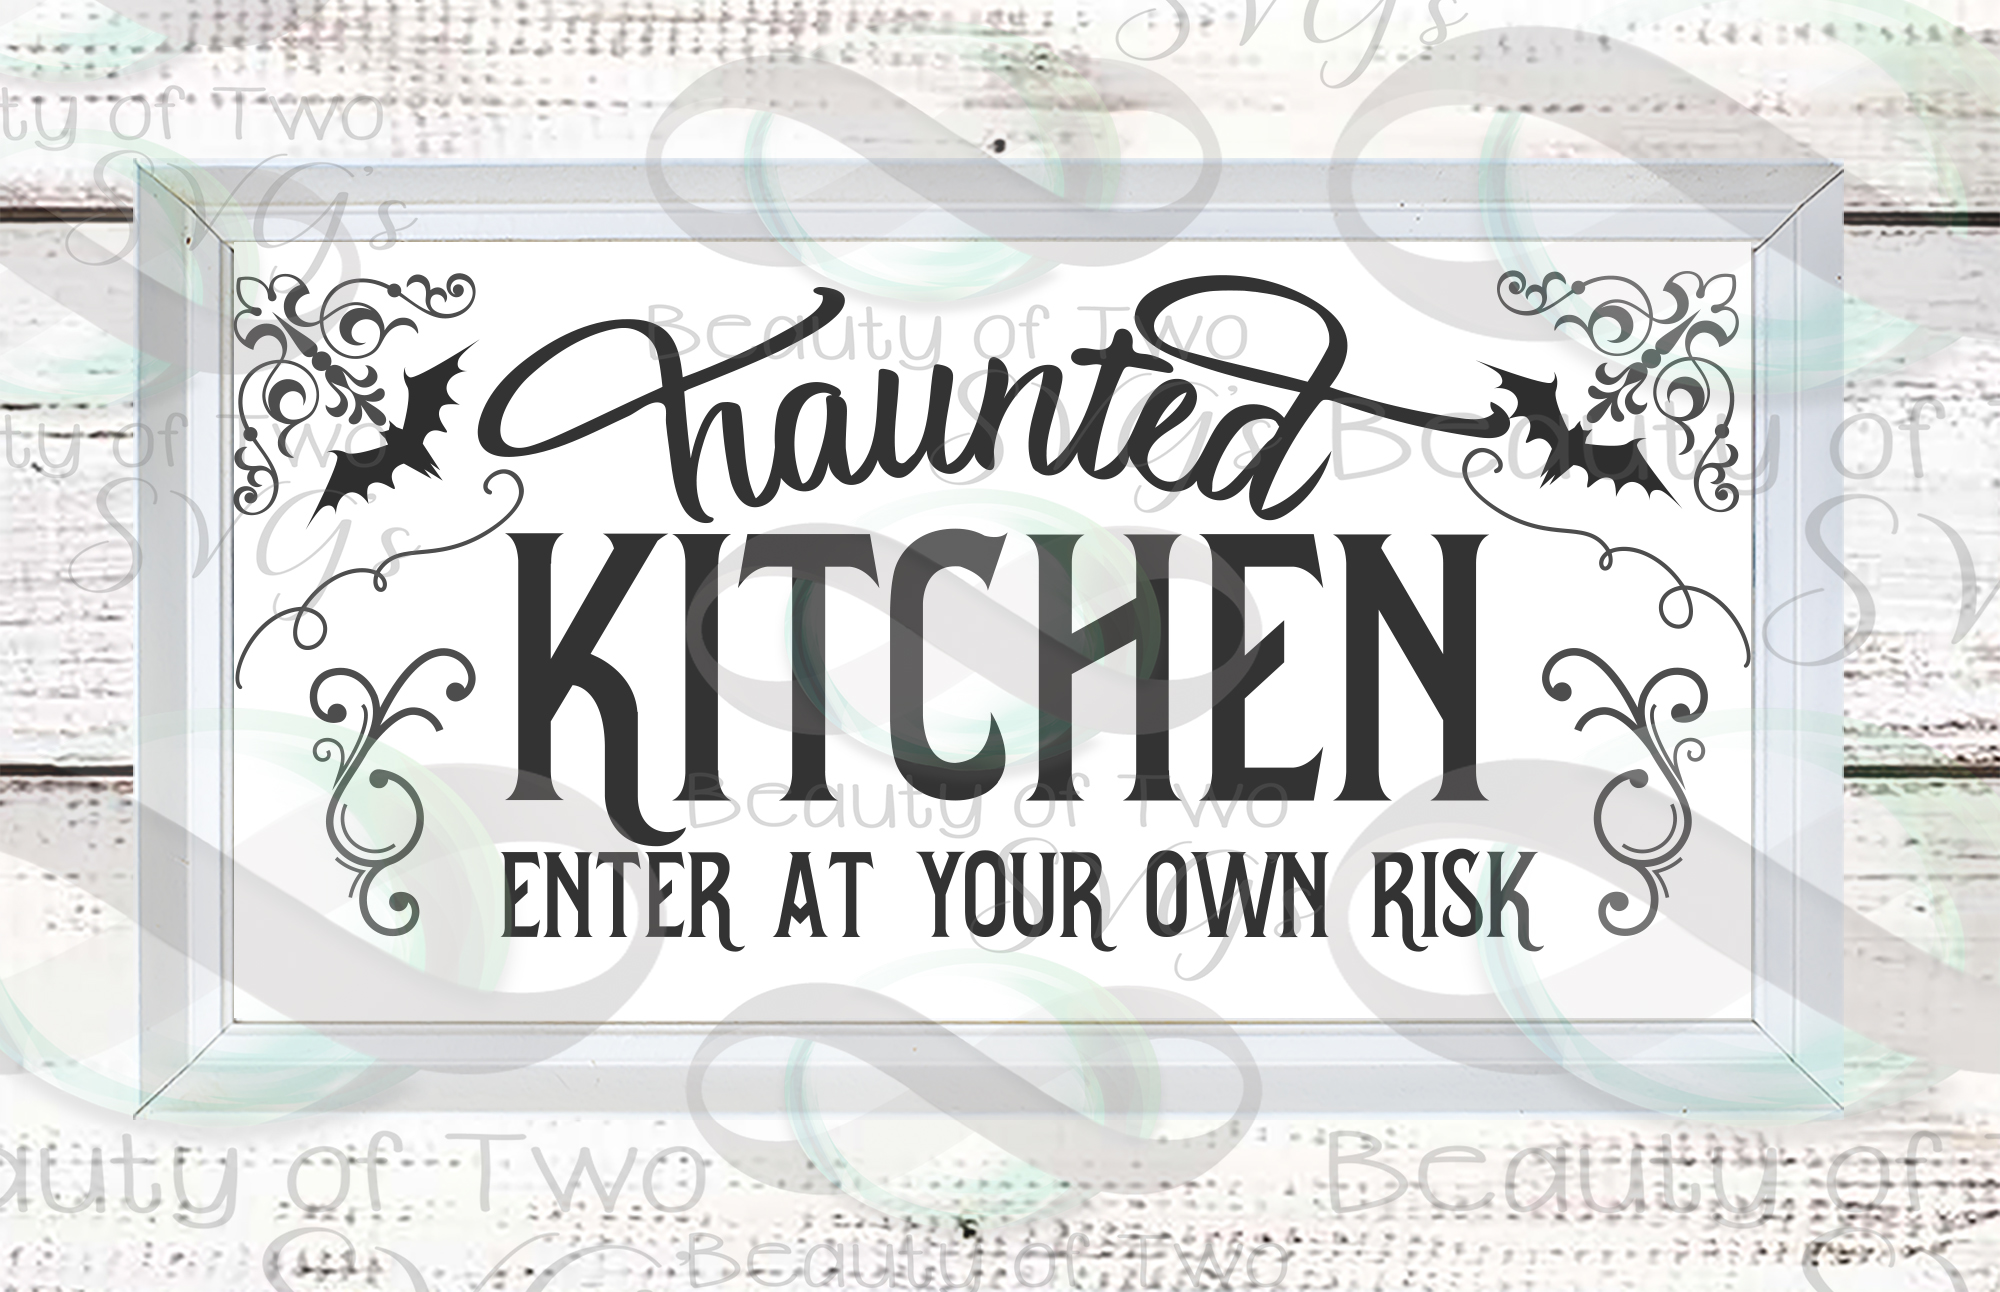 Halloween svg sign design, Haunted kitchen svg, kitchen svg example image 2